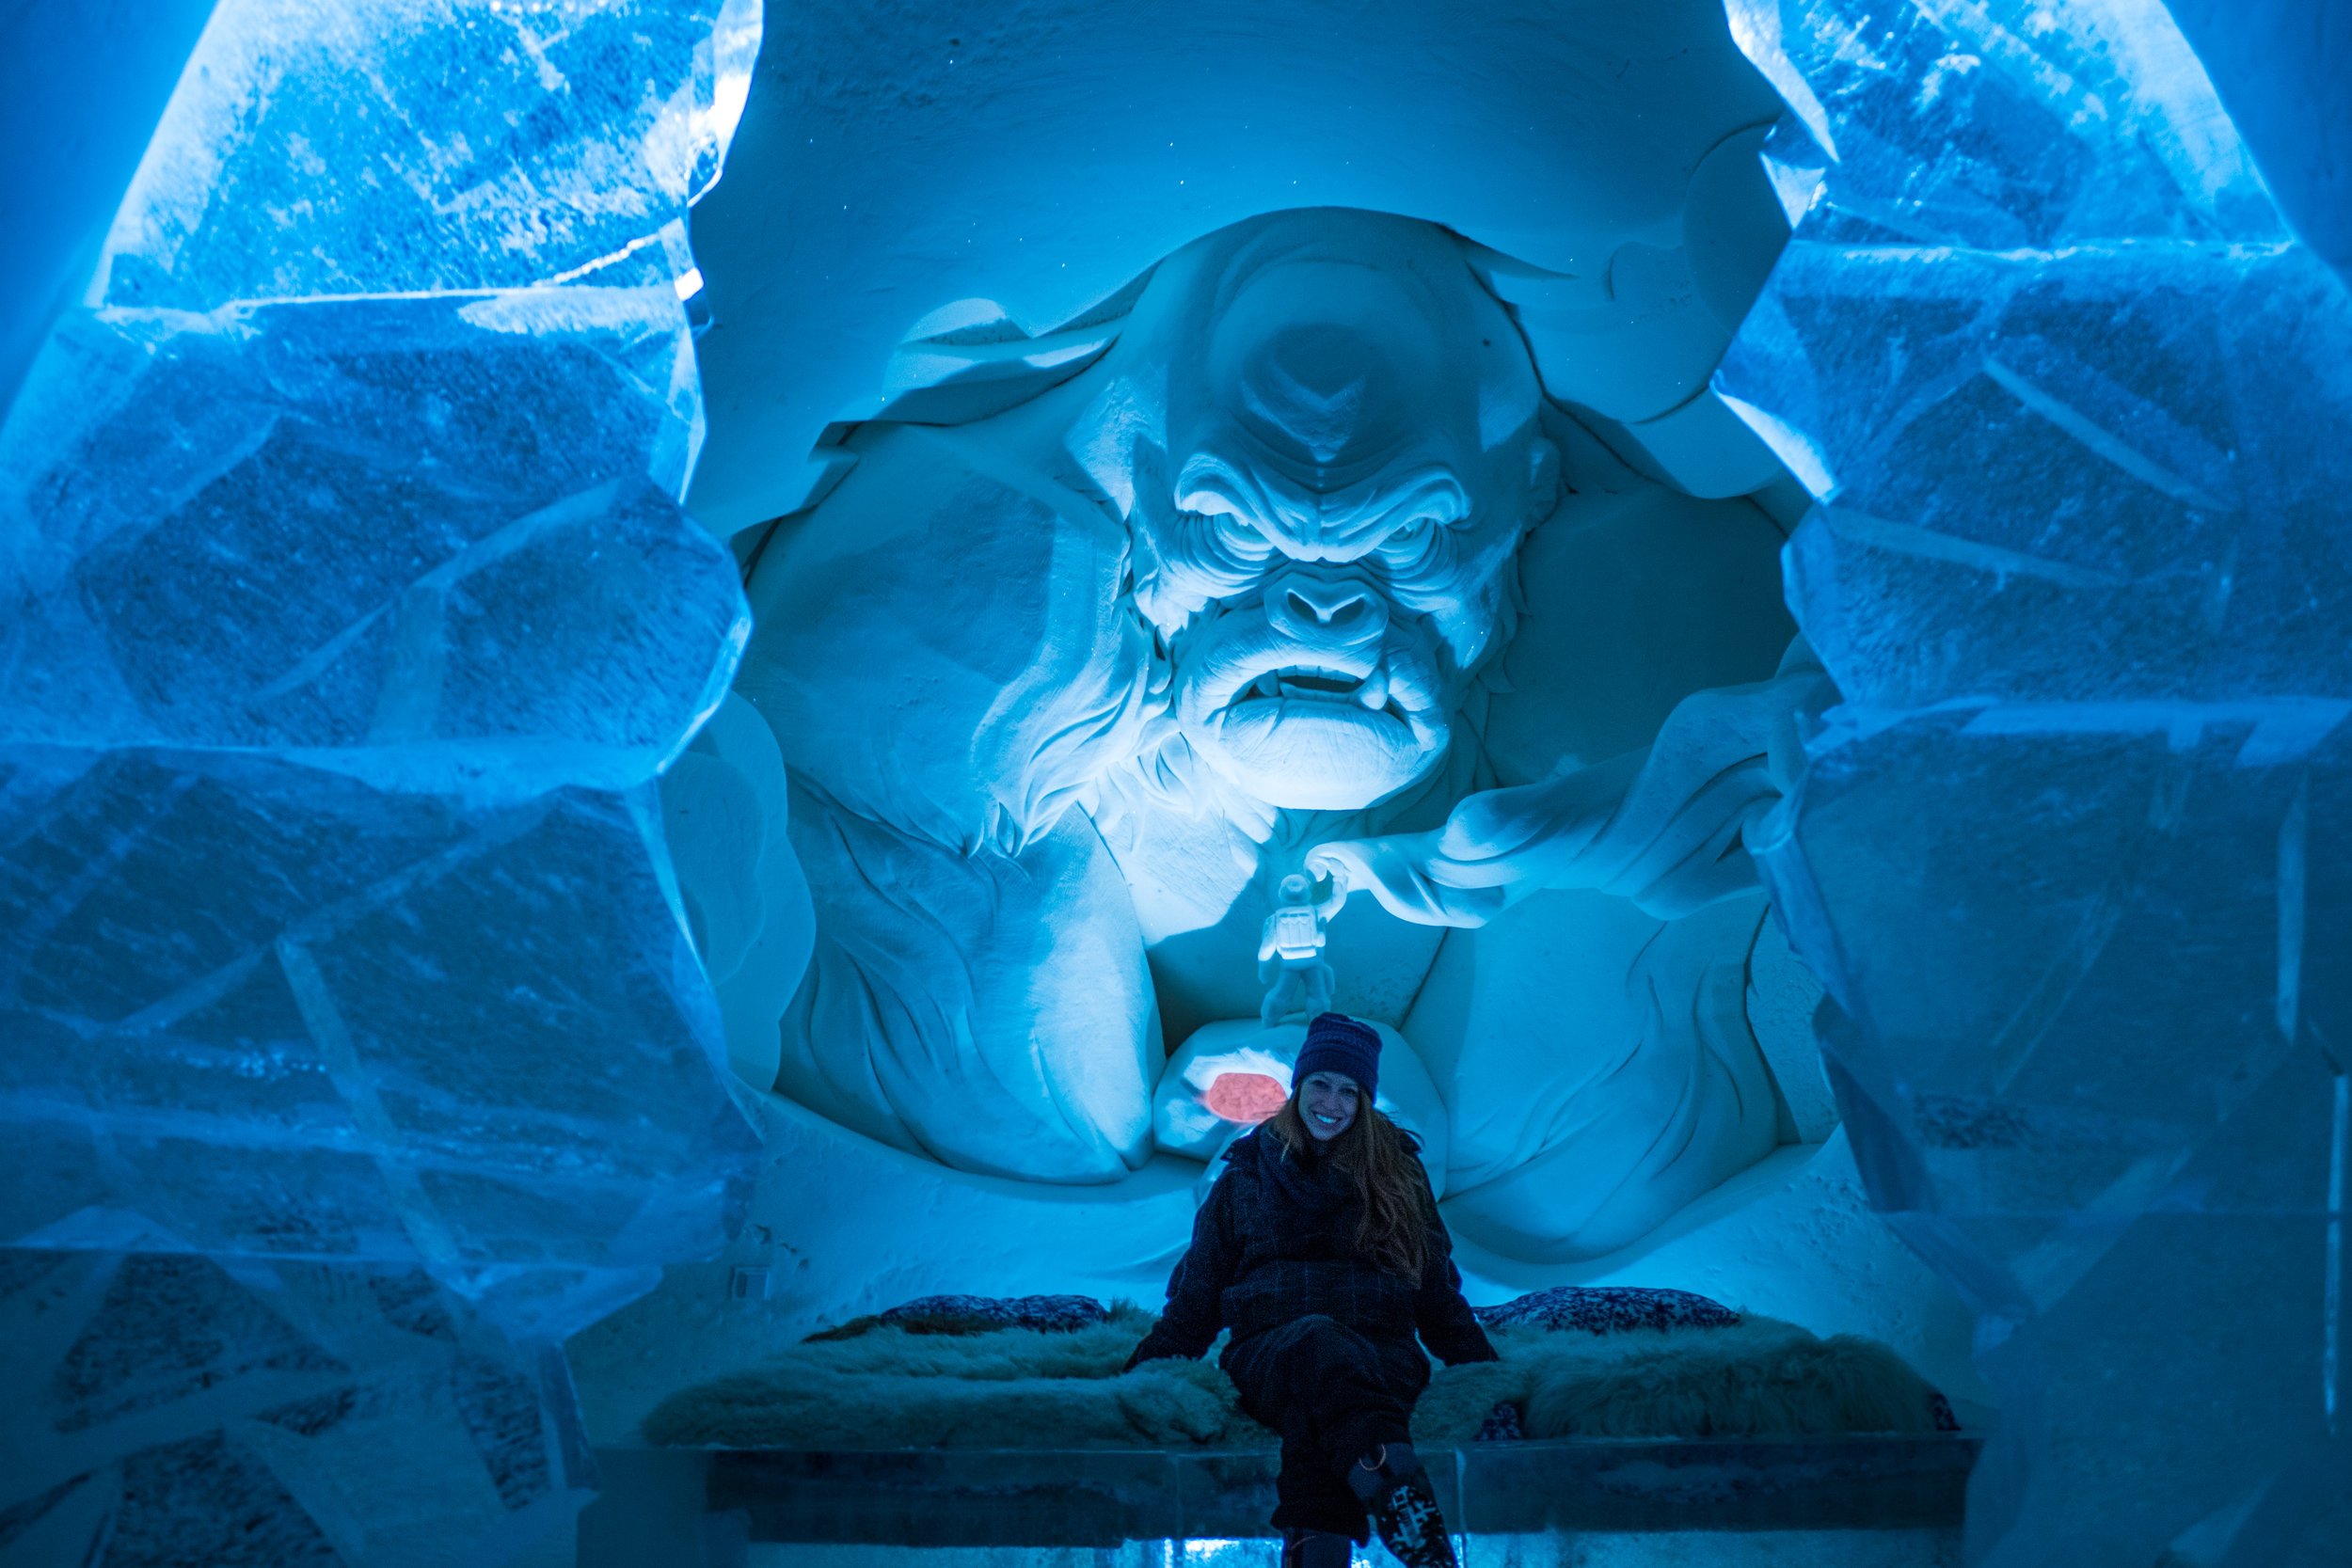 Snow Castle Kemi Finland - Snow Hotels / ice hotels in Lapland Finland